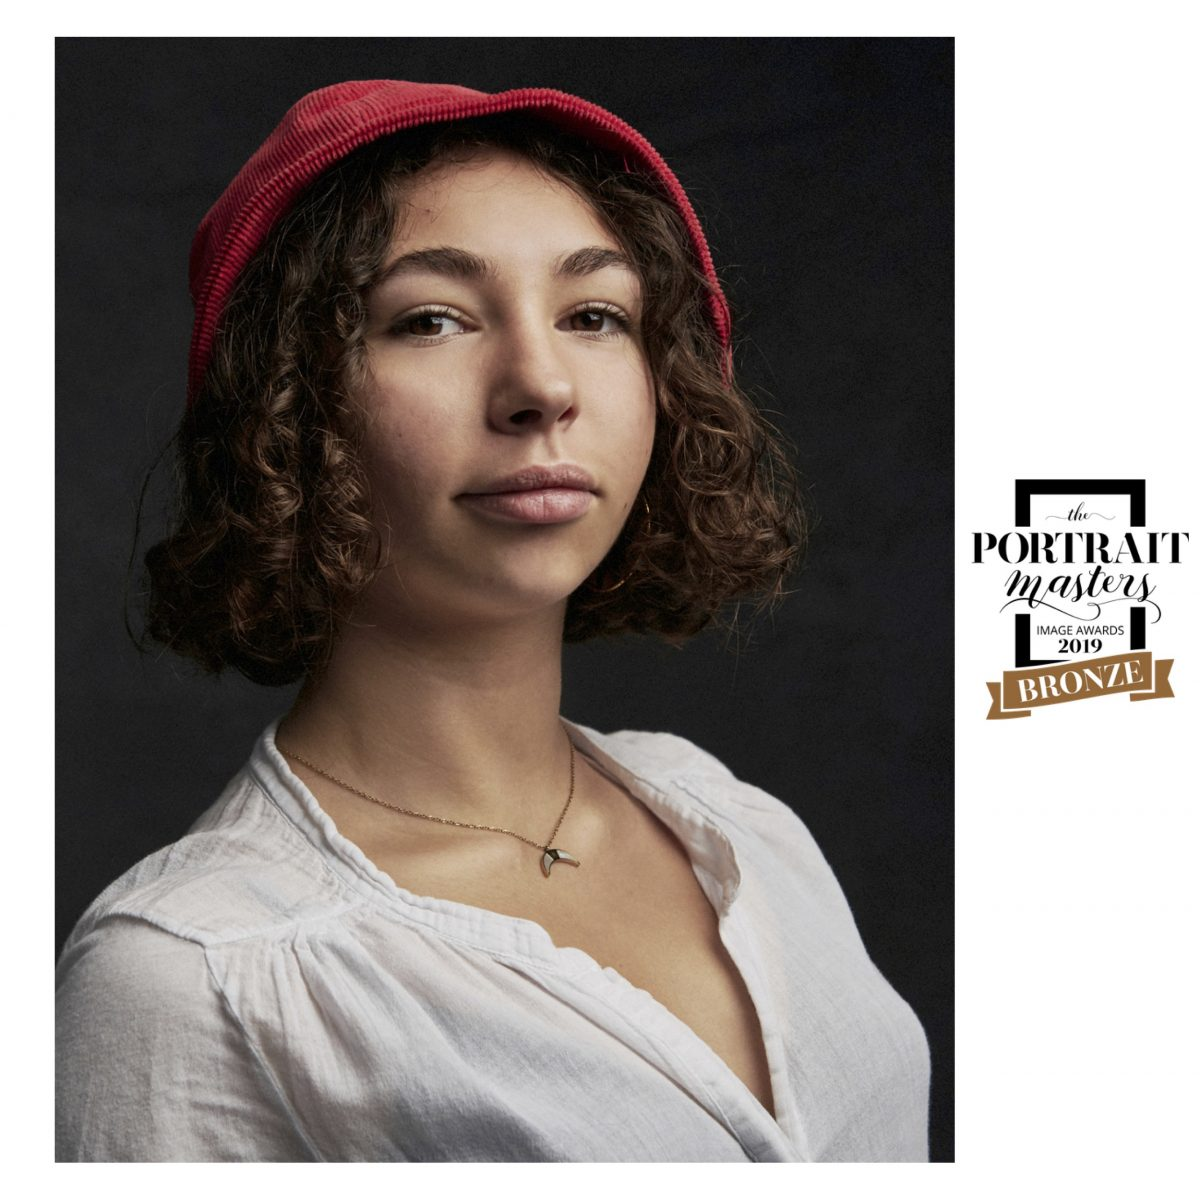 portrait d'adolescent, photographe portrait Paris, Paris photographer, The Portrait Masters awards